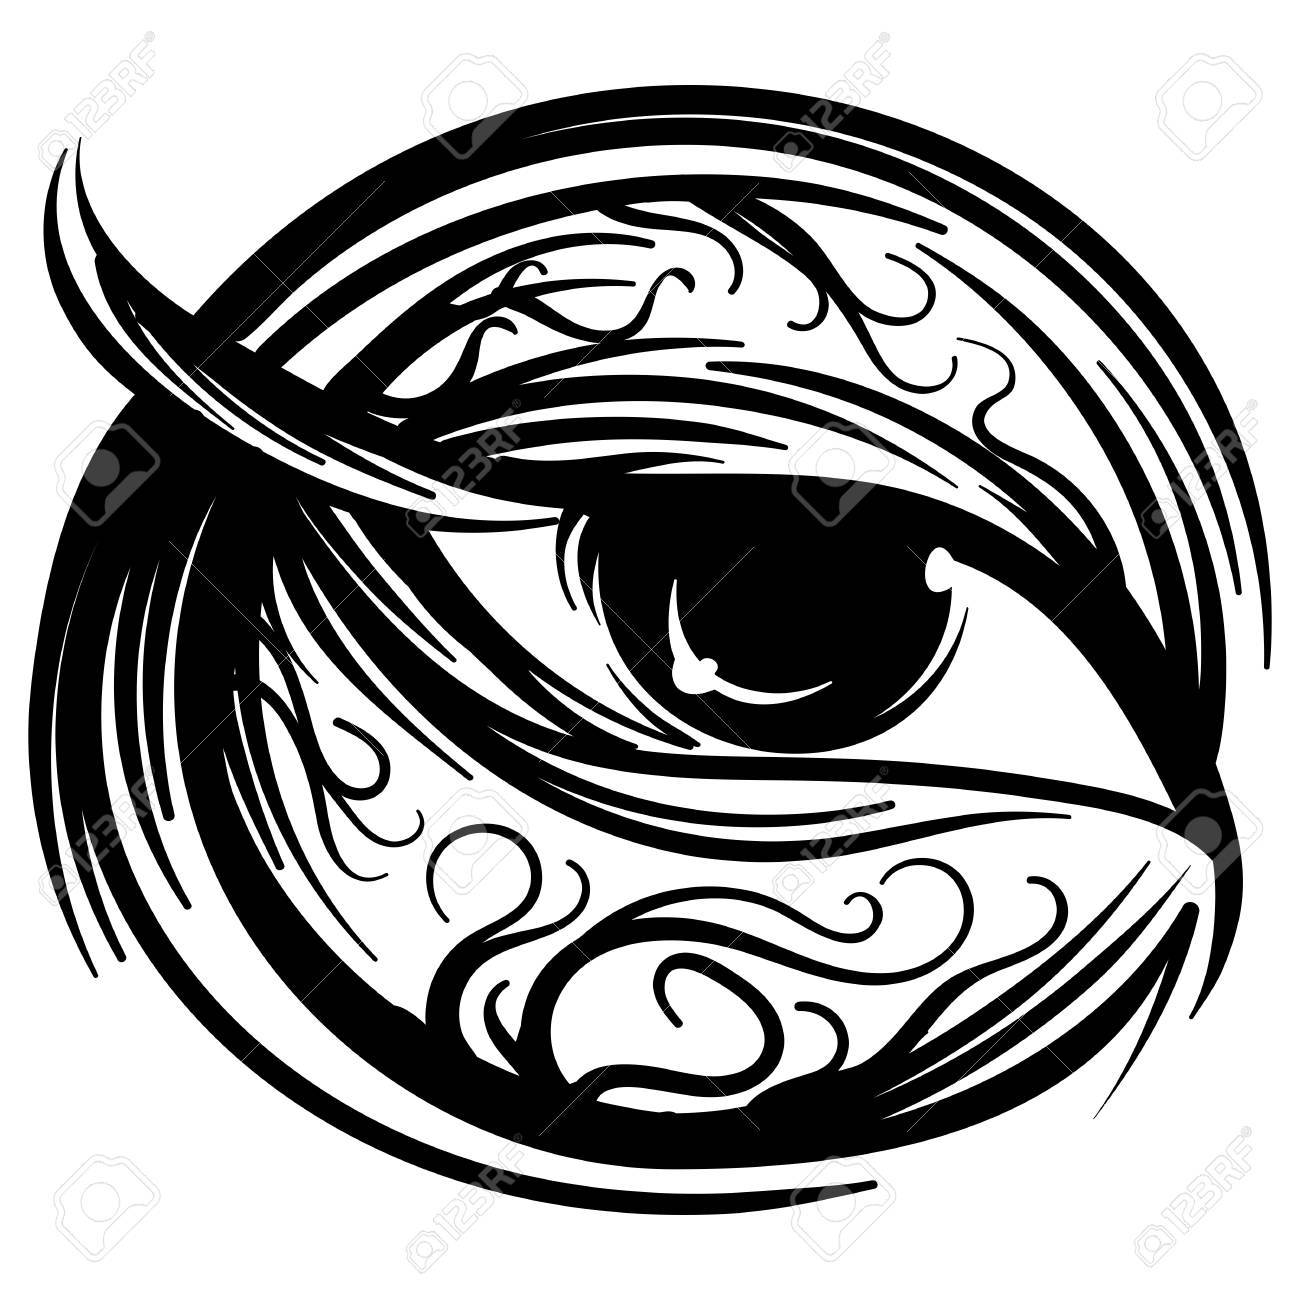 1300x1300 Vector Illustration Of Human Eye Stylized Of Ink Sketch Doodle